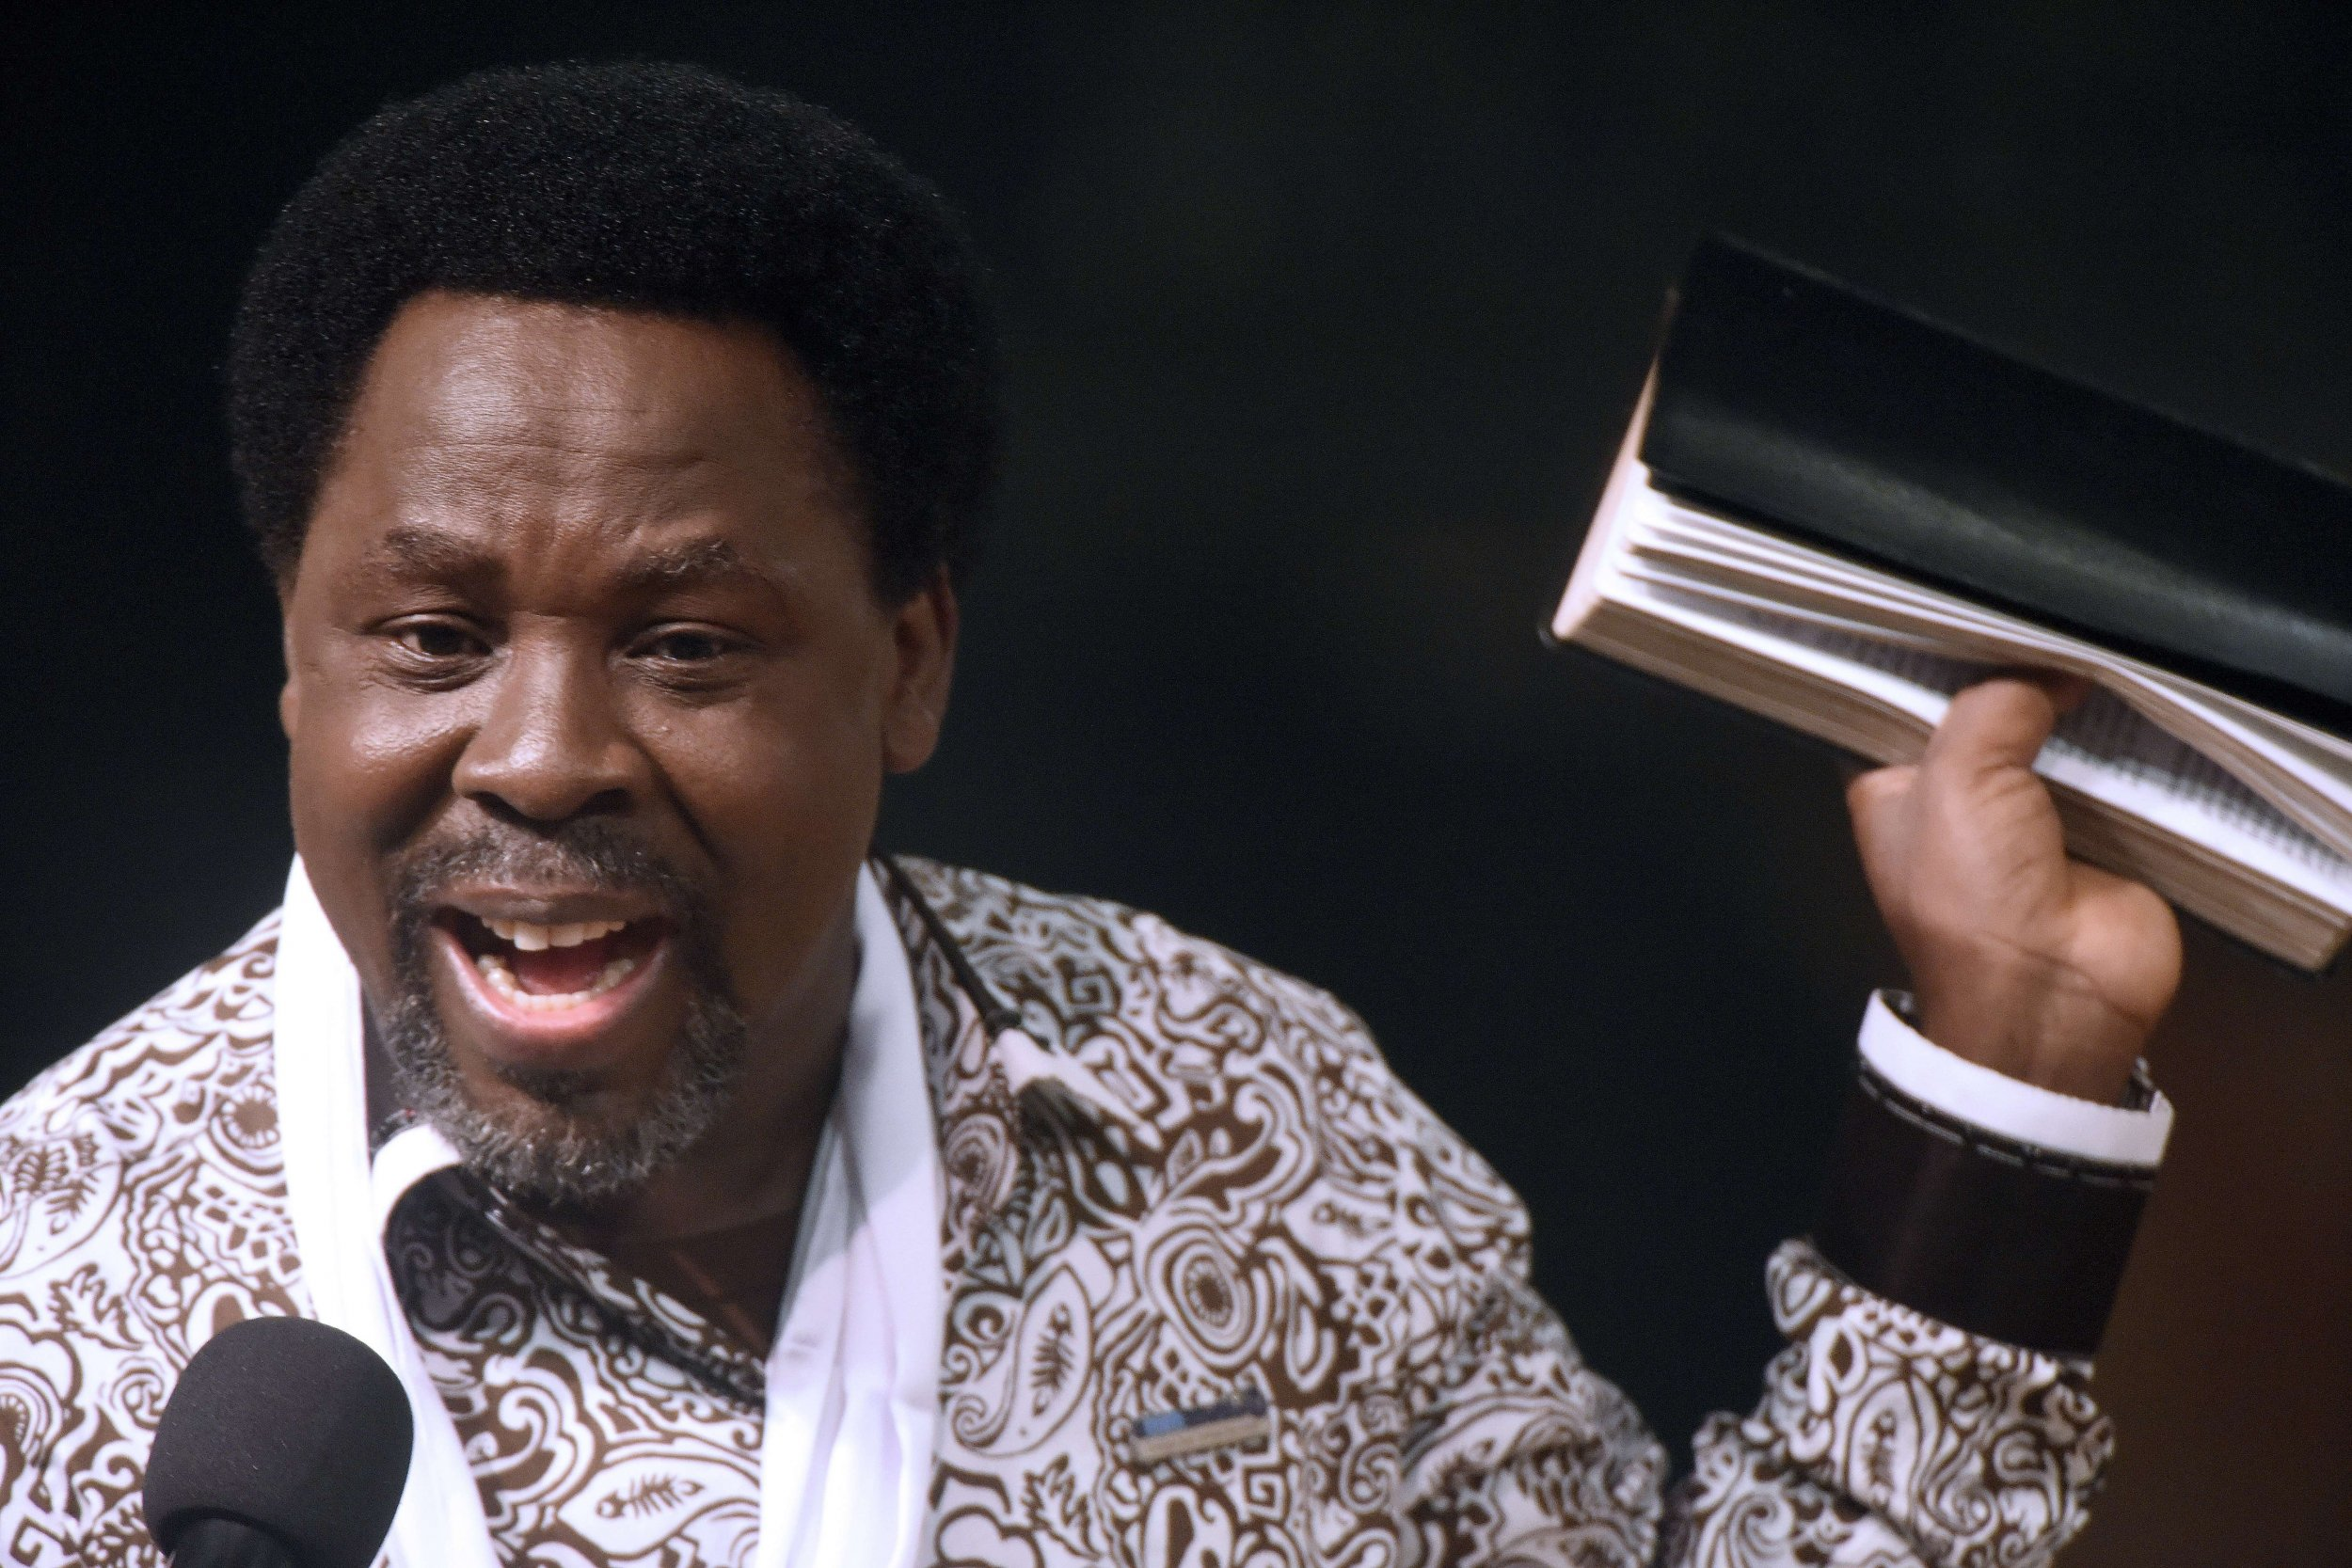 TB Joshua preaches in Lagos.